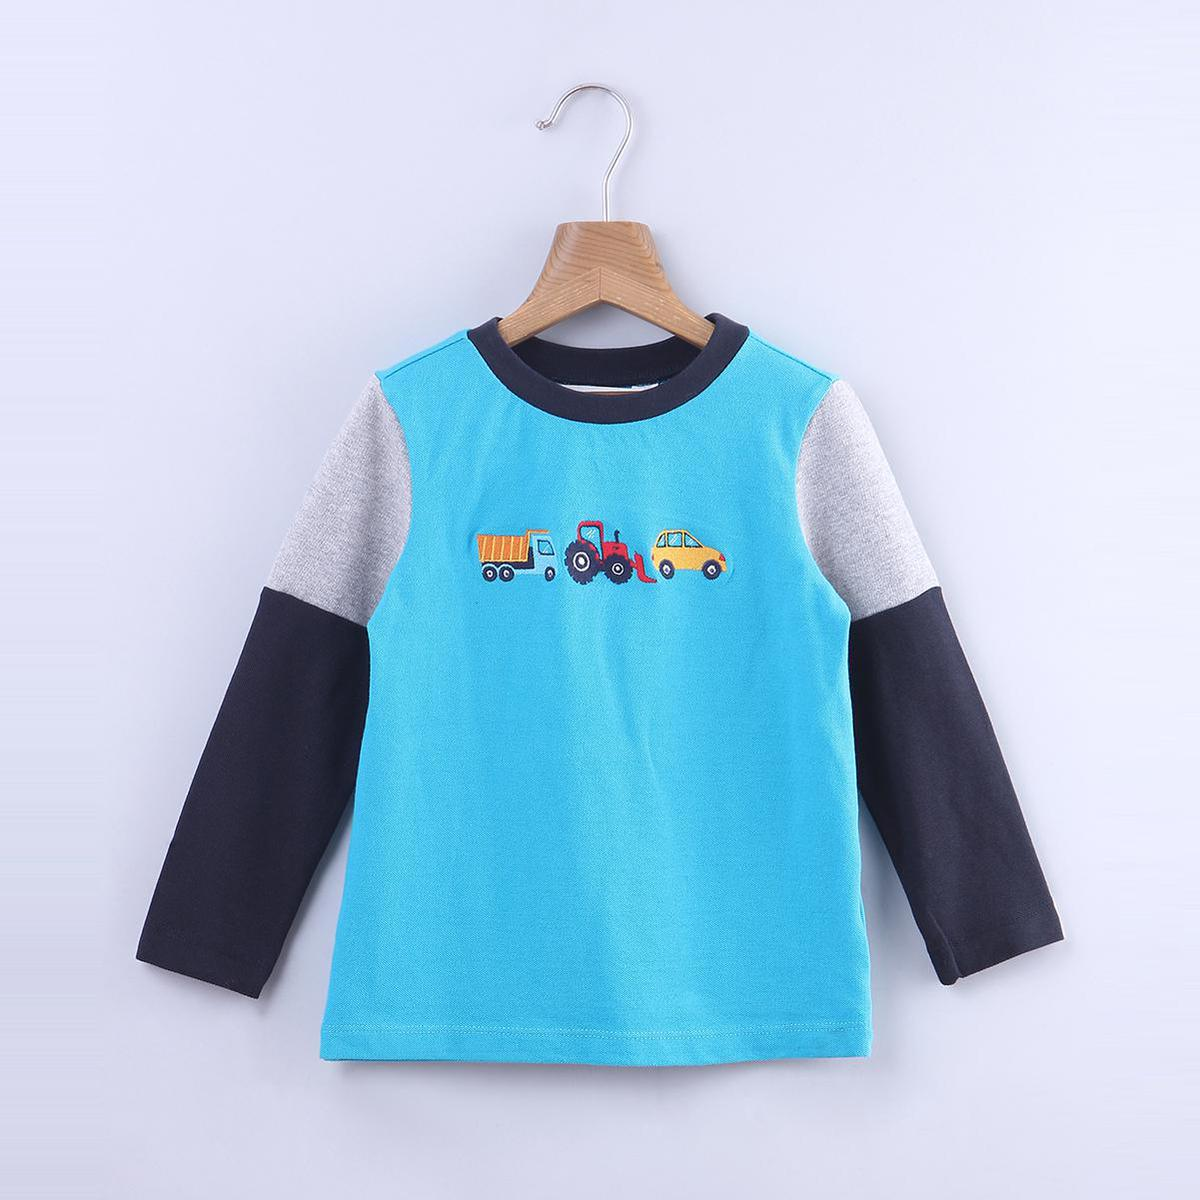 Beebay - Turquoise Blue Colored Truck Embroidery Cotton T-shirts For Kids Boys